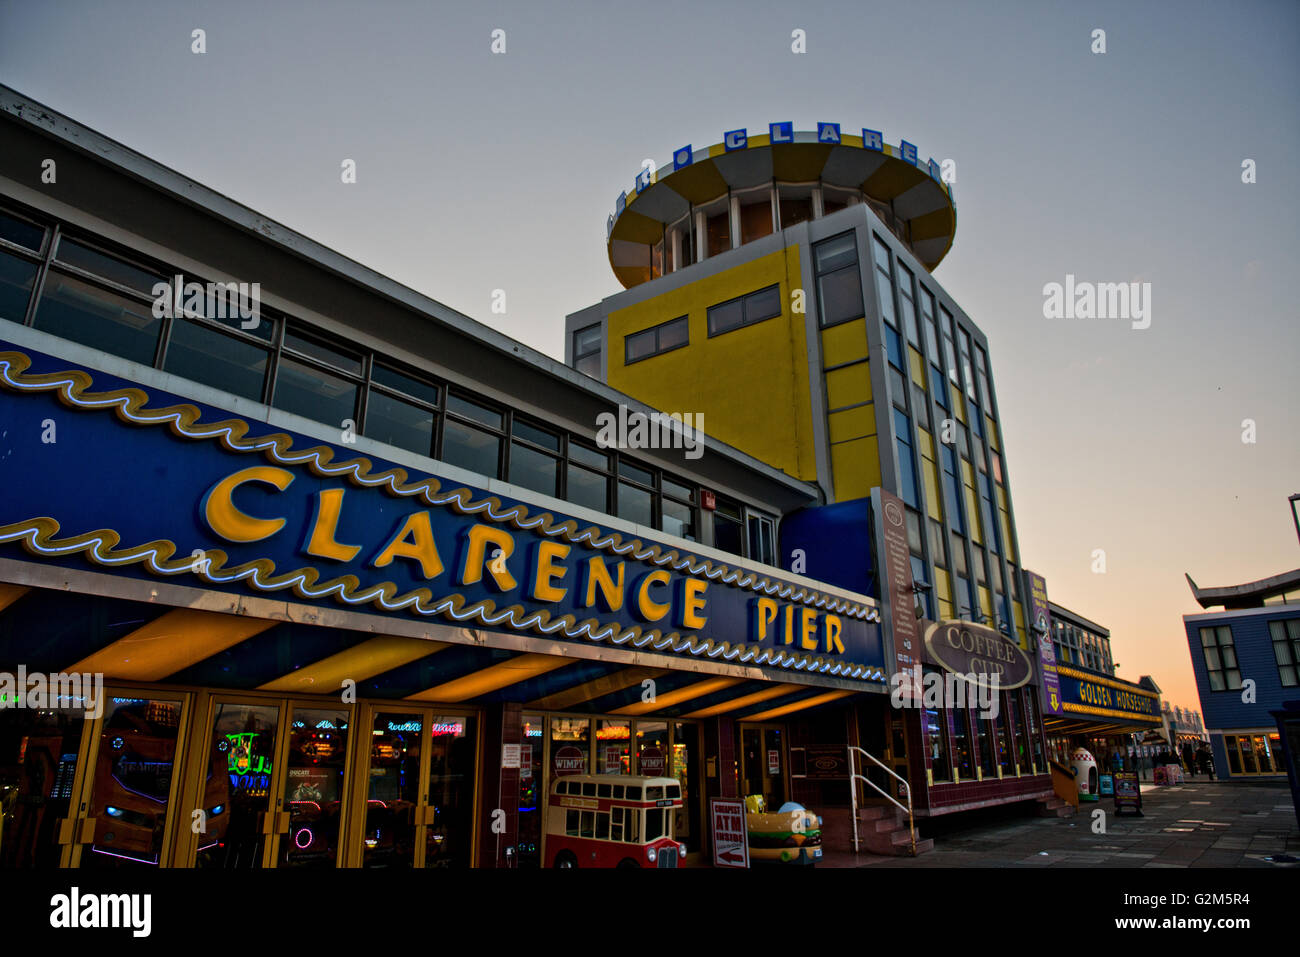 The front entrance to Clarence Pier Funfair and Amusement Arcade at Southsea, Portsmouth, Hampshire, UK Stock Photo